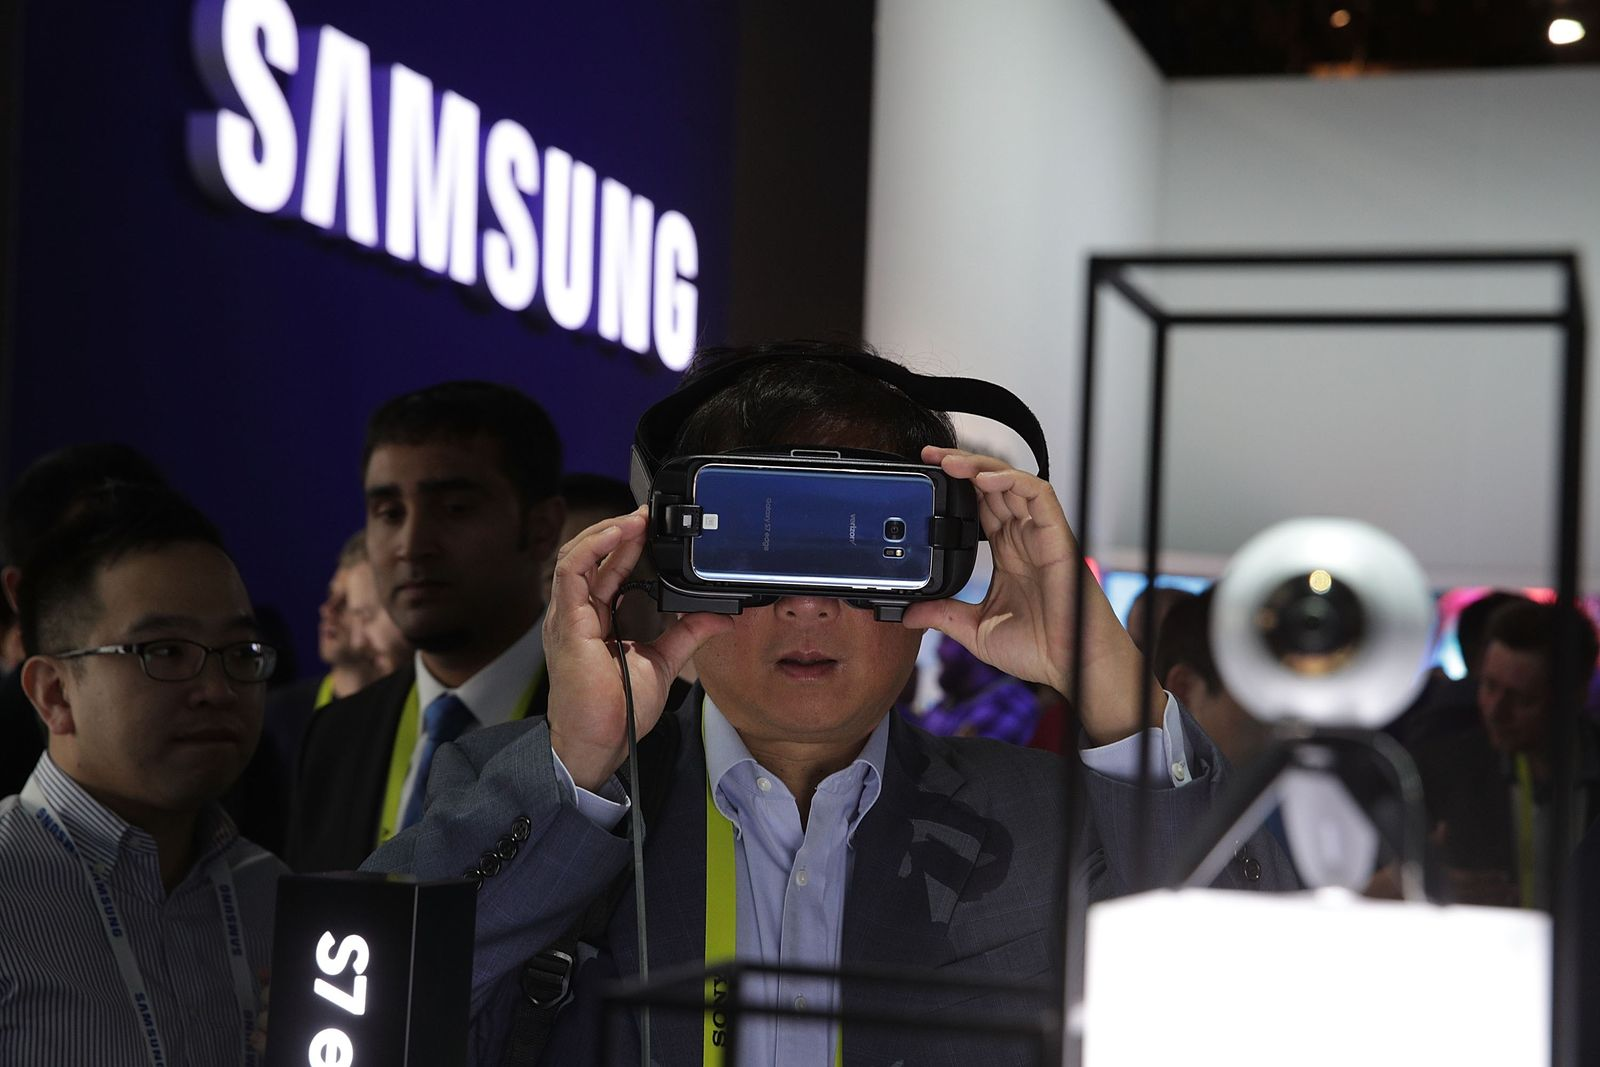 US-LATEST-CONSUMER-TECHNOLOGY-PRODUCTS-ON-DISPLAY-AT-CES-2017